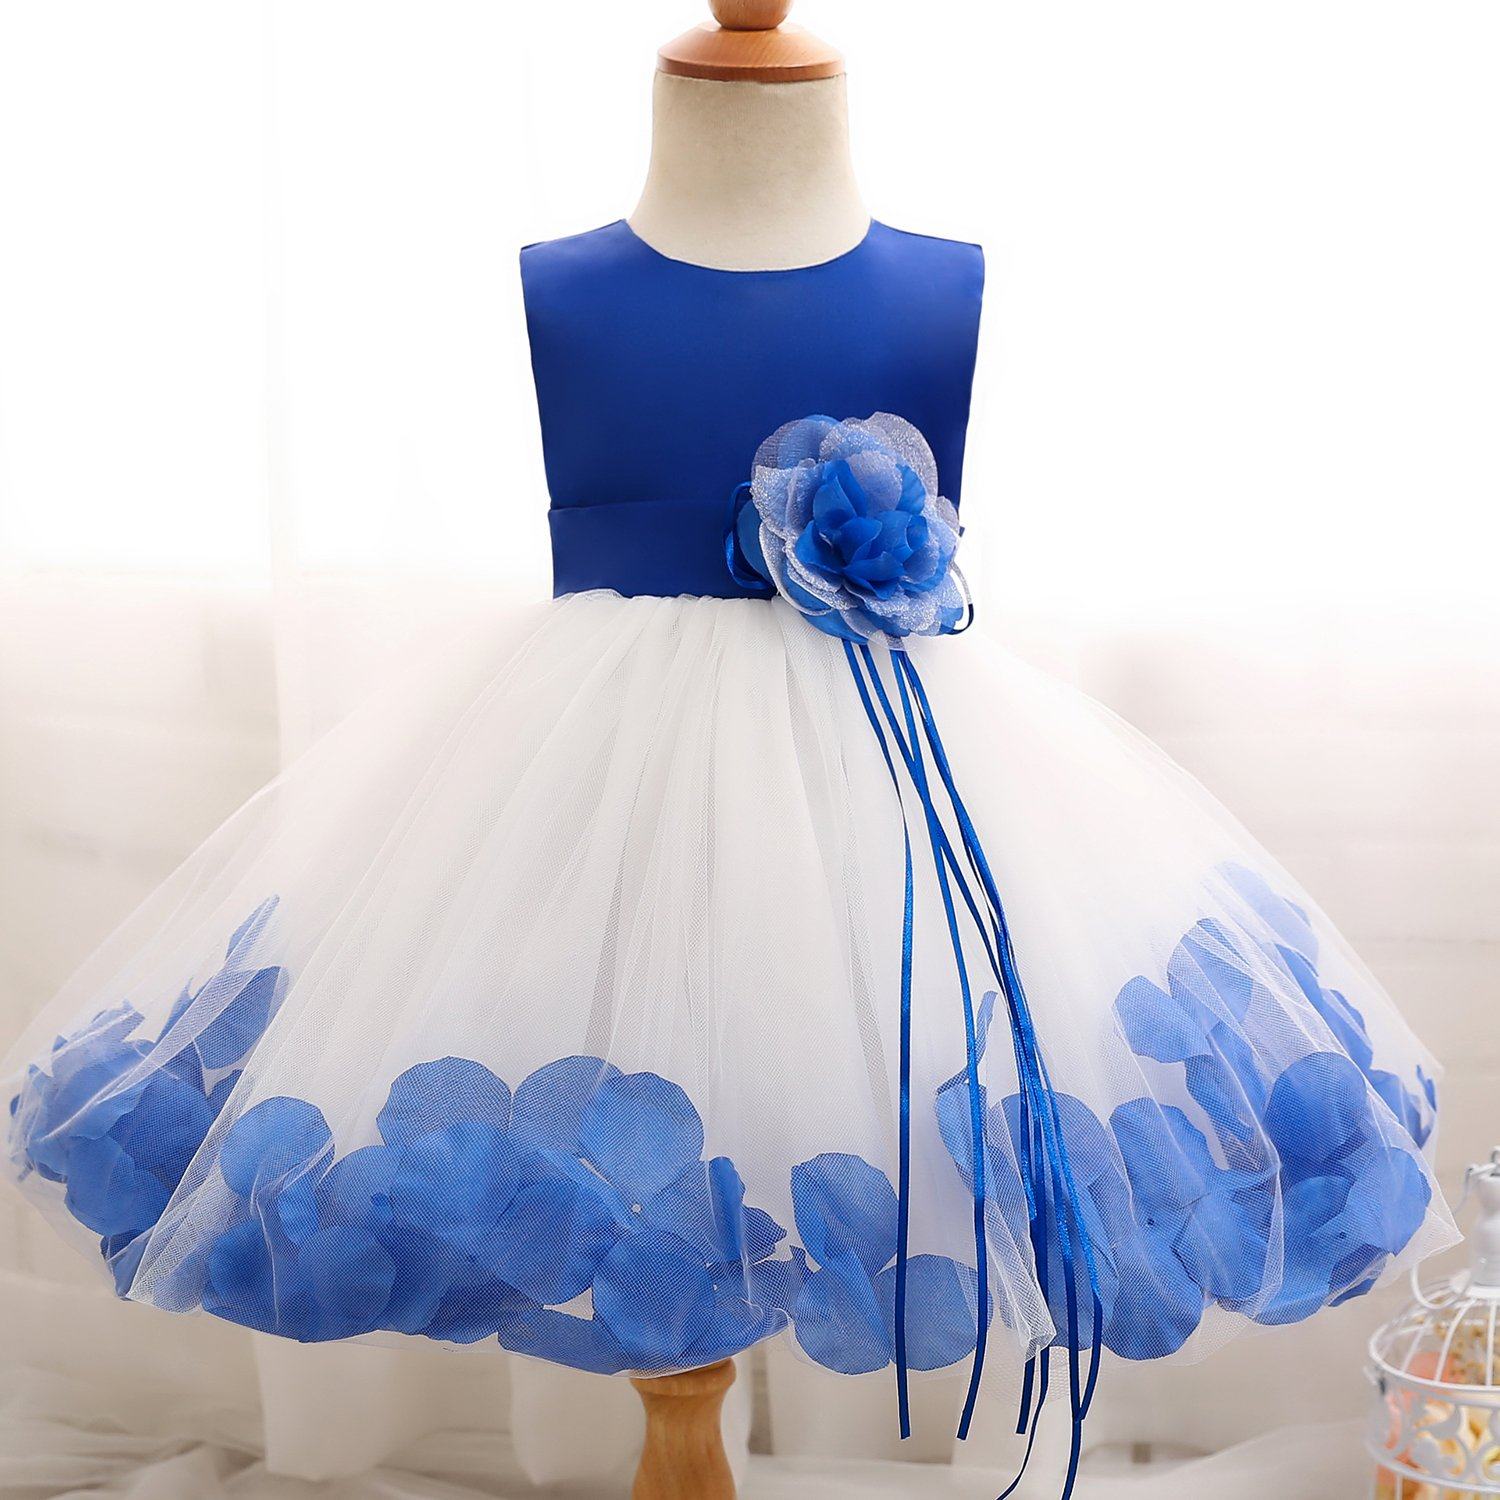 b4daf61a559 Amazon.com  NNJXD Girl Tutu Flower Petals Bow Bridal Dress for Toddler Girl   Clothing